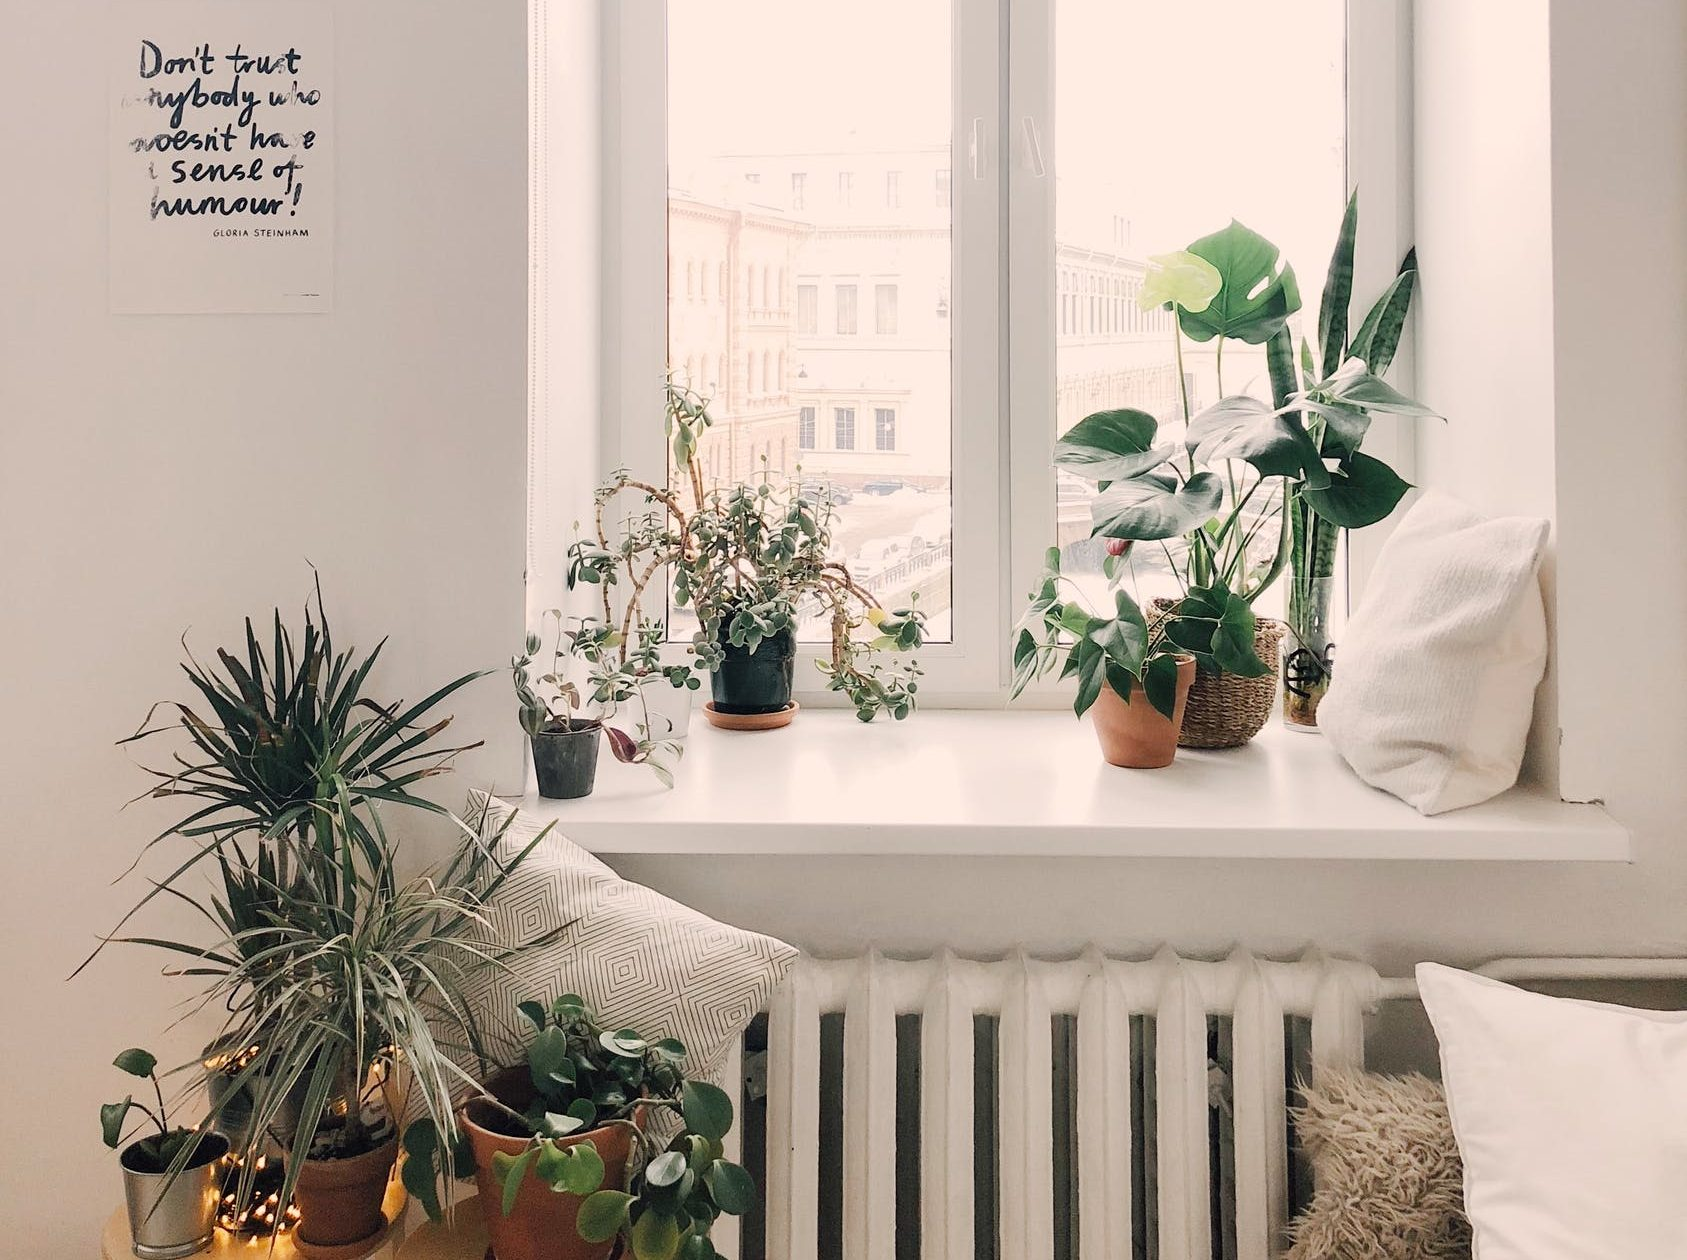 Research proves that ample light and greenery can uplift your day and add to your general well-being.